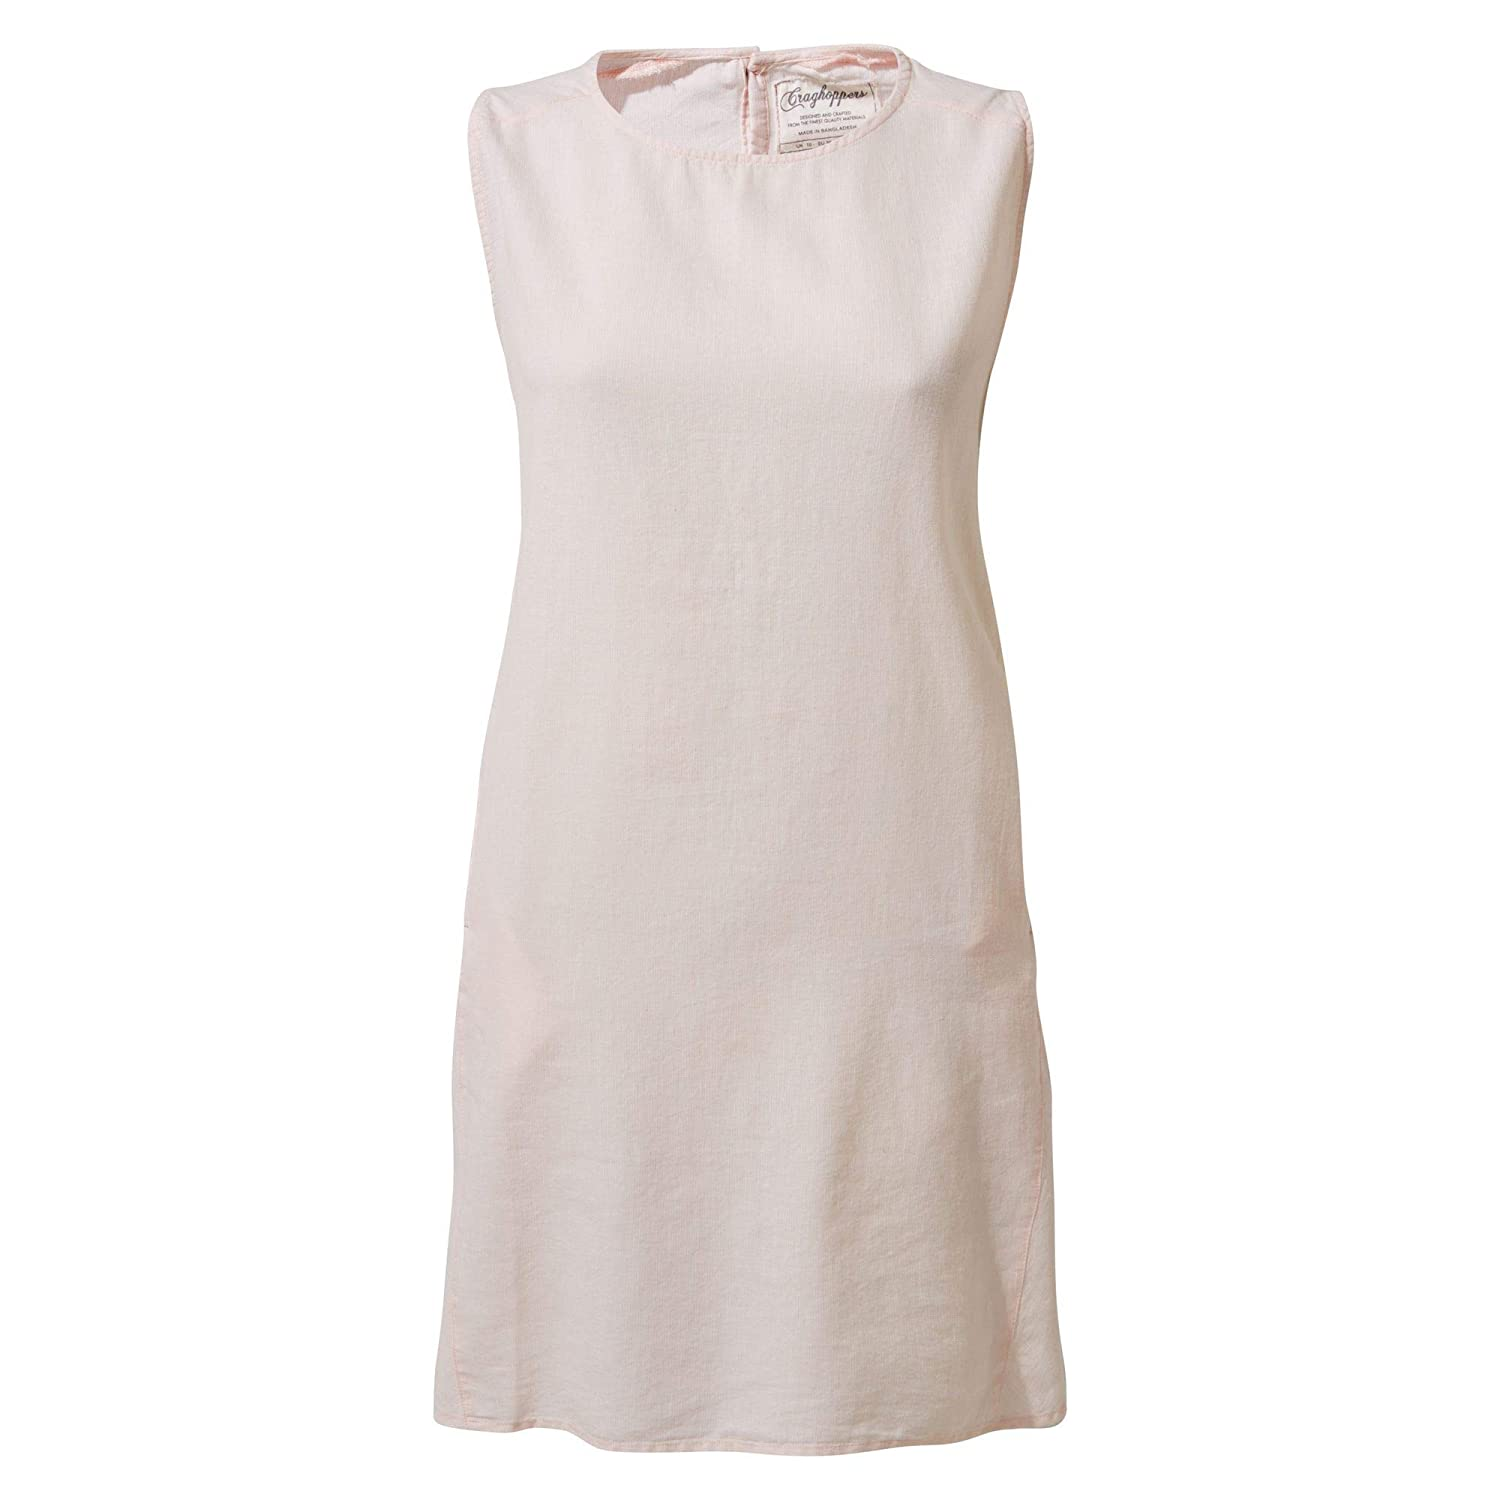 Craghoppers Womens Lara Dress